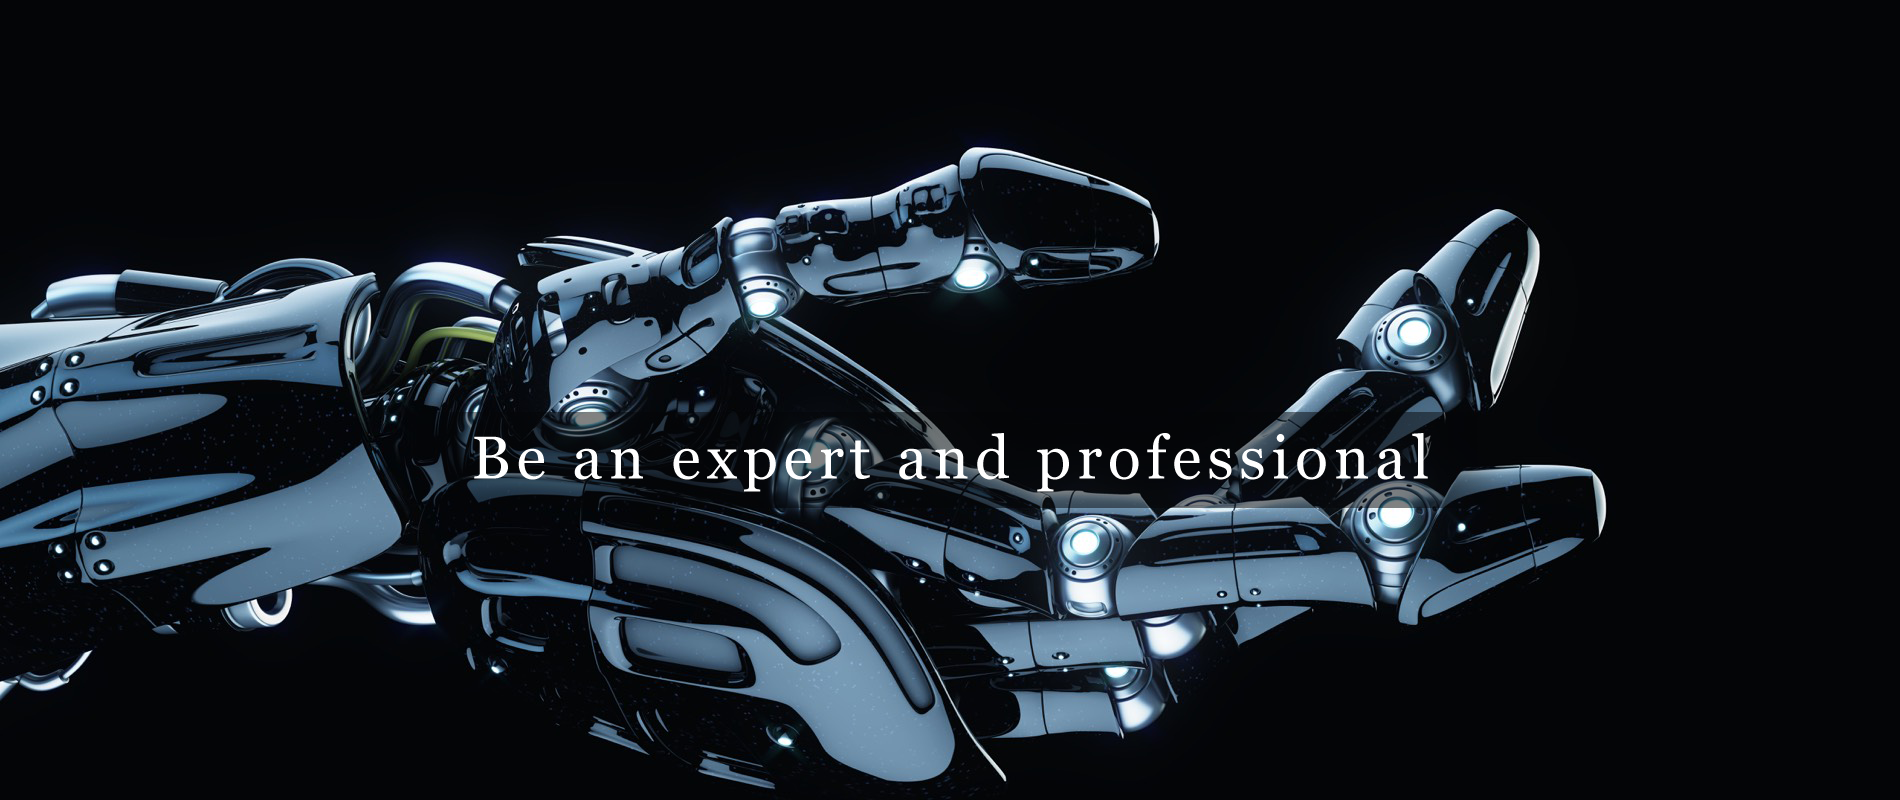 Be an expert and professional